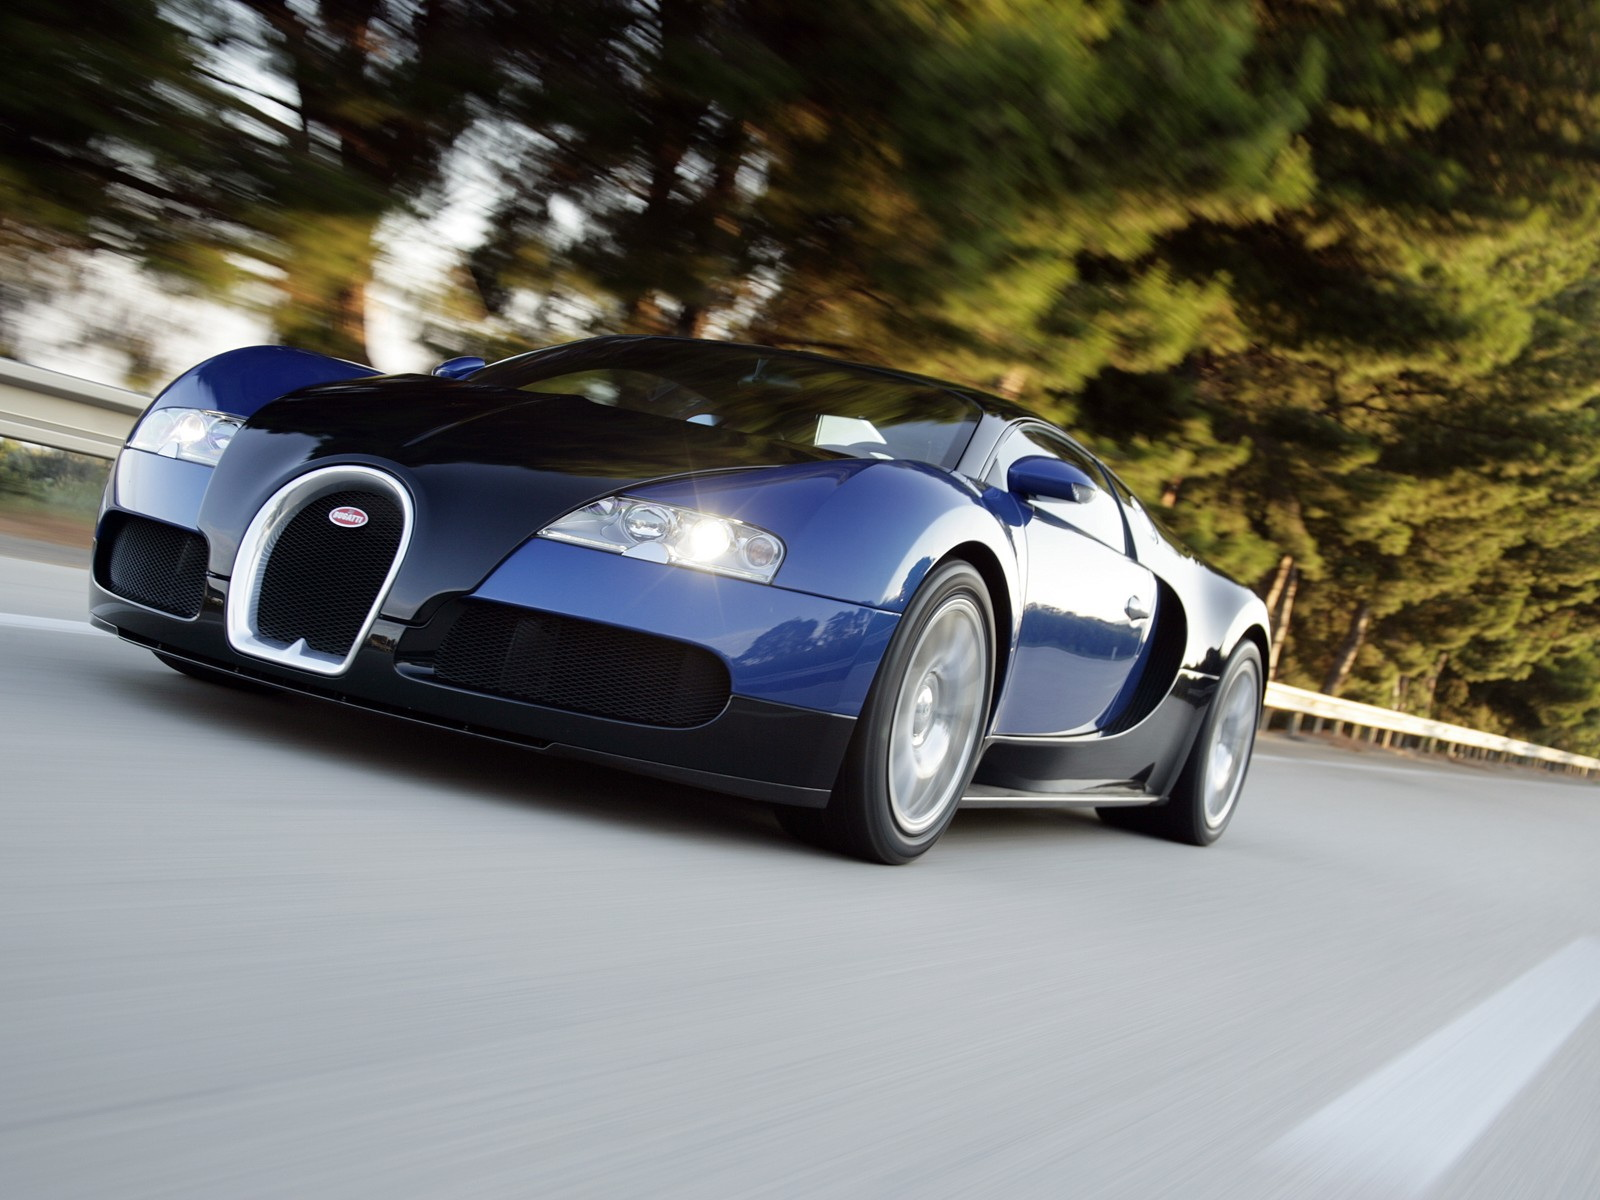 cool car wallpapers bugatti veyron blue. Black Bedroom Furniture Sets. Home Design Ideas